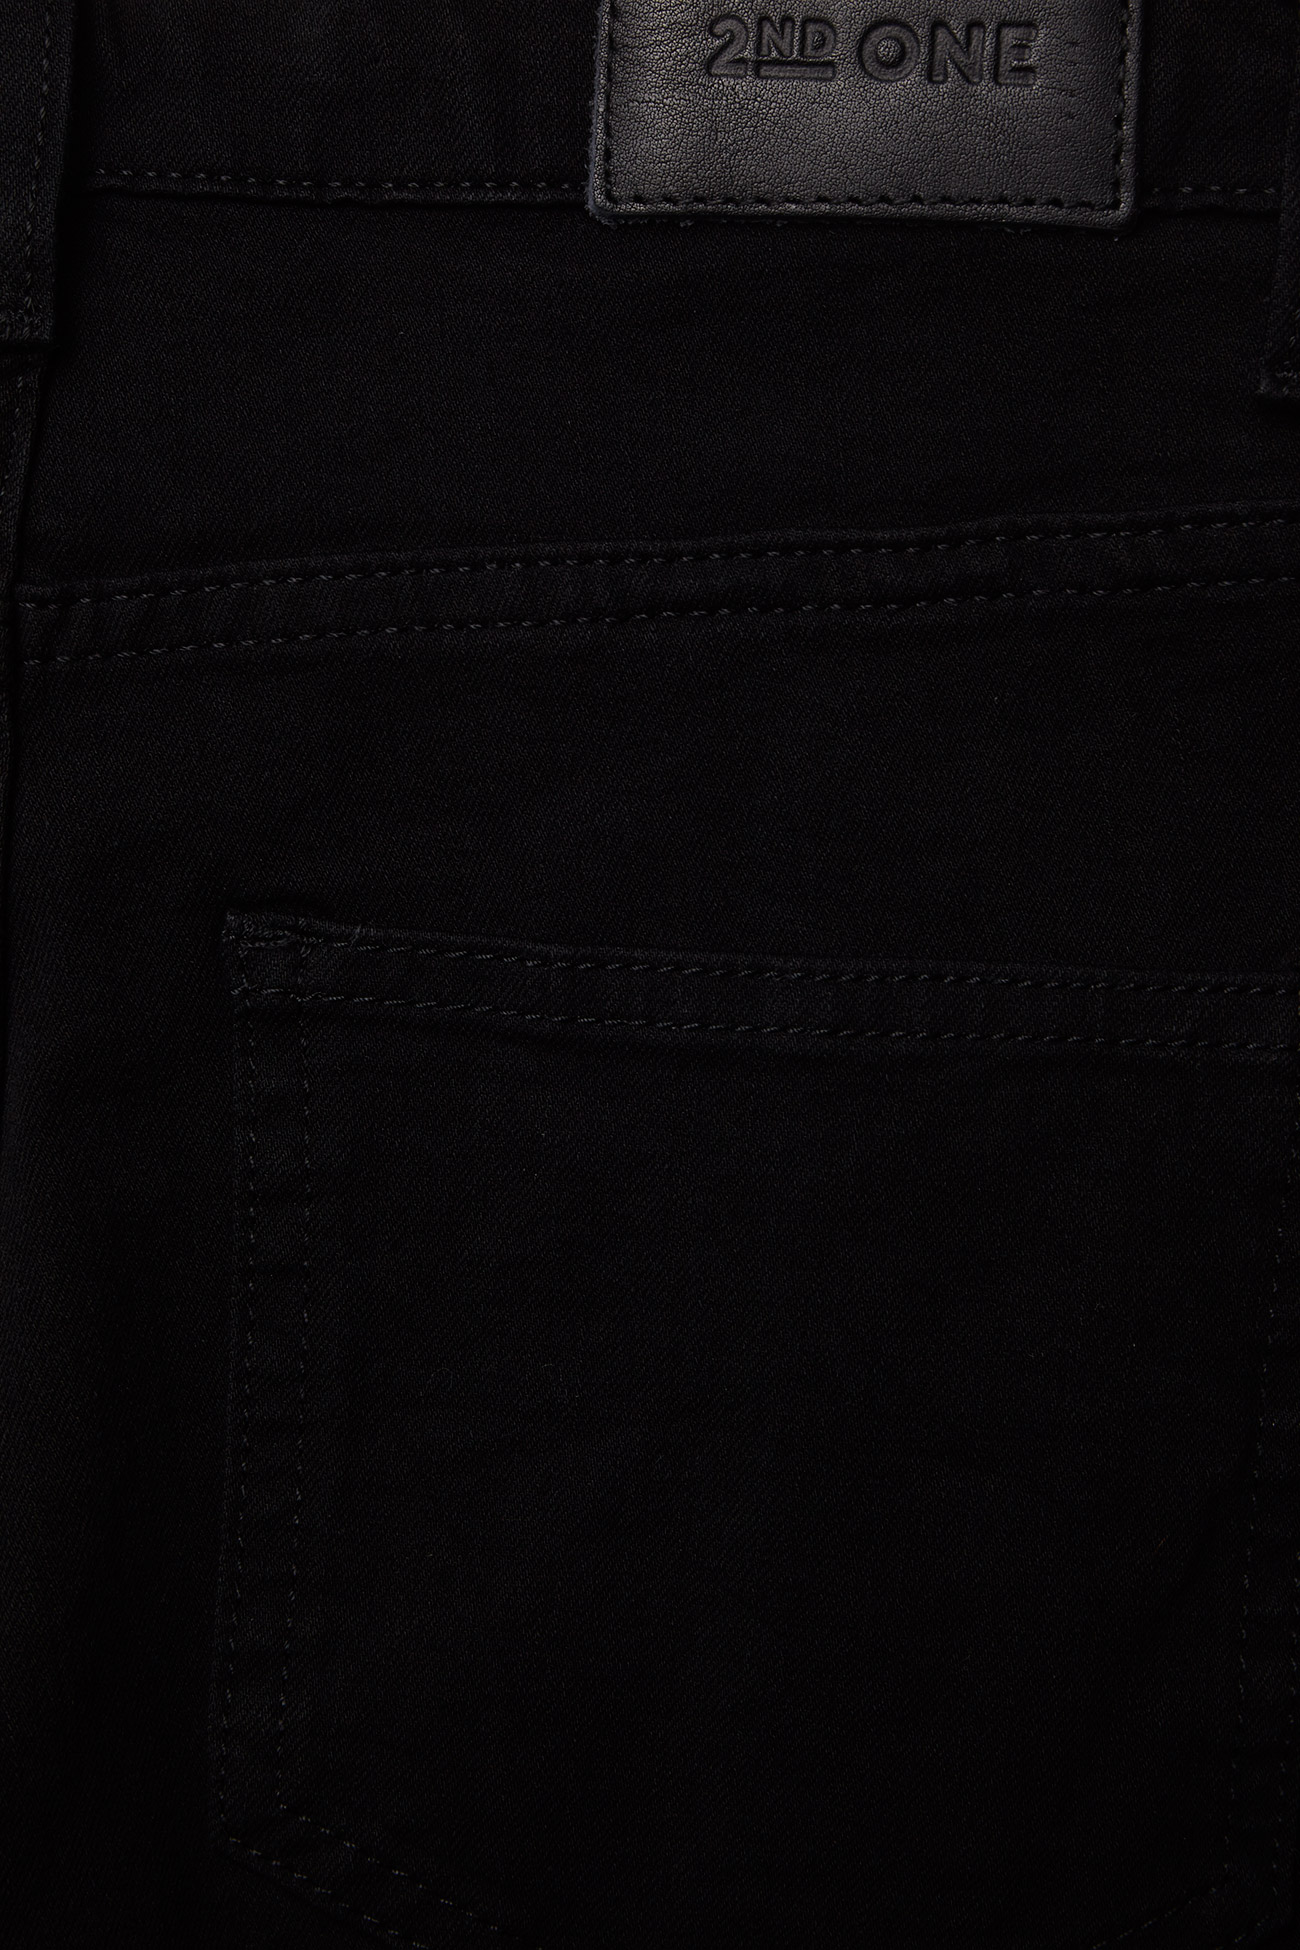 2nd One Amy 851 Jeans (Black Flex) 329 kr | Stort utbud av designermärken K3DTO4SP